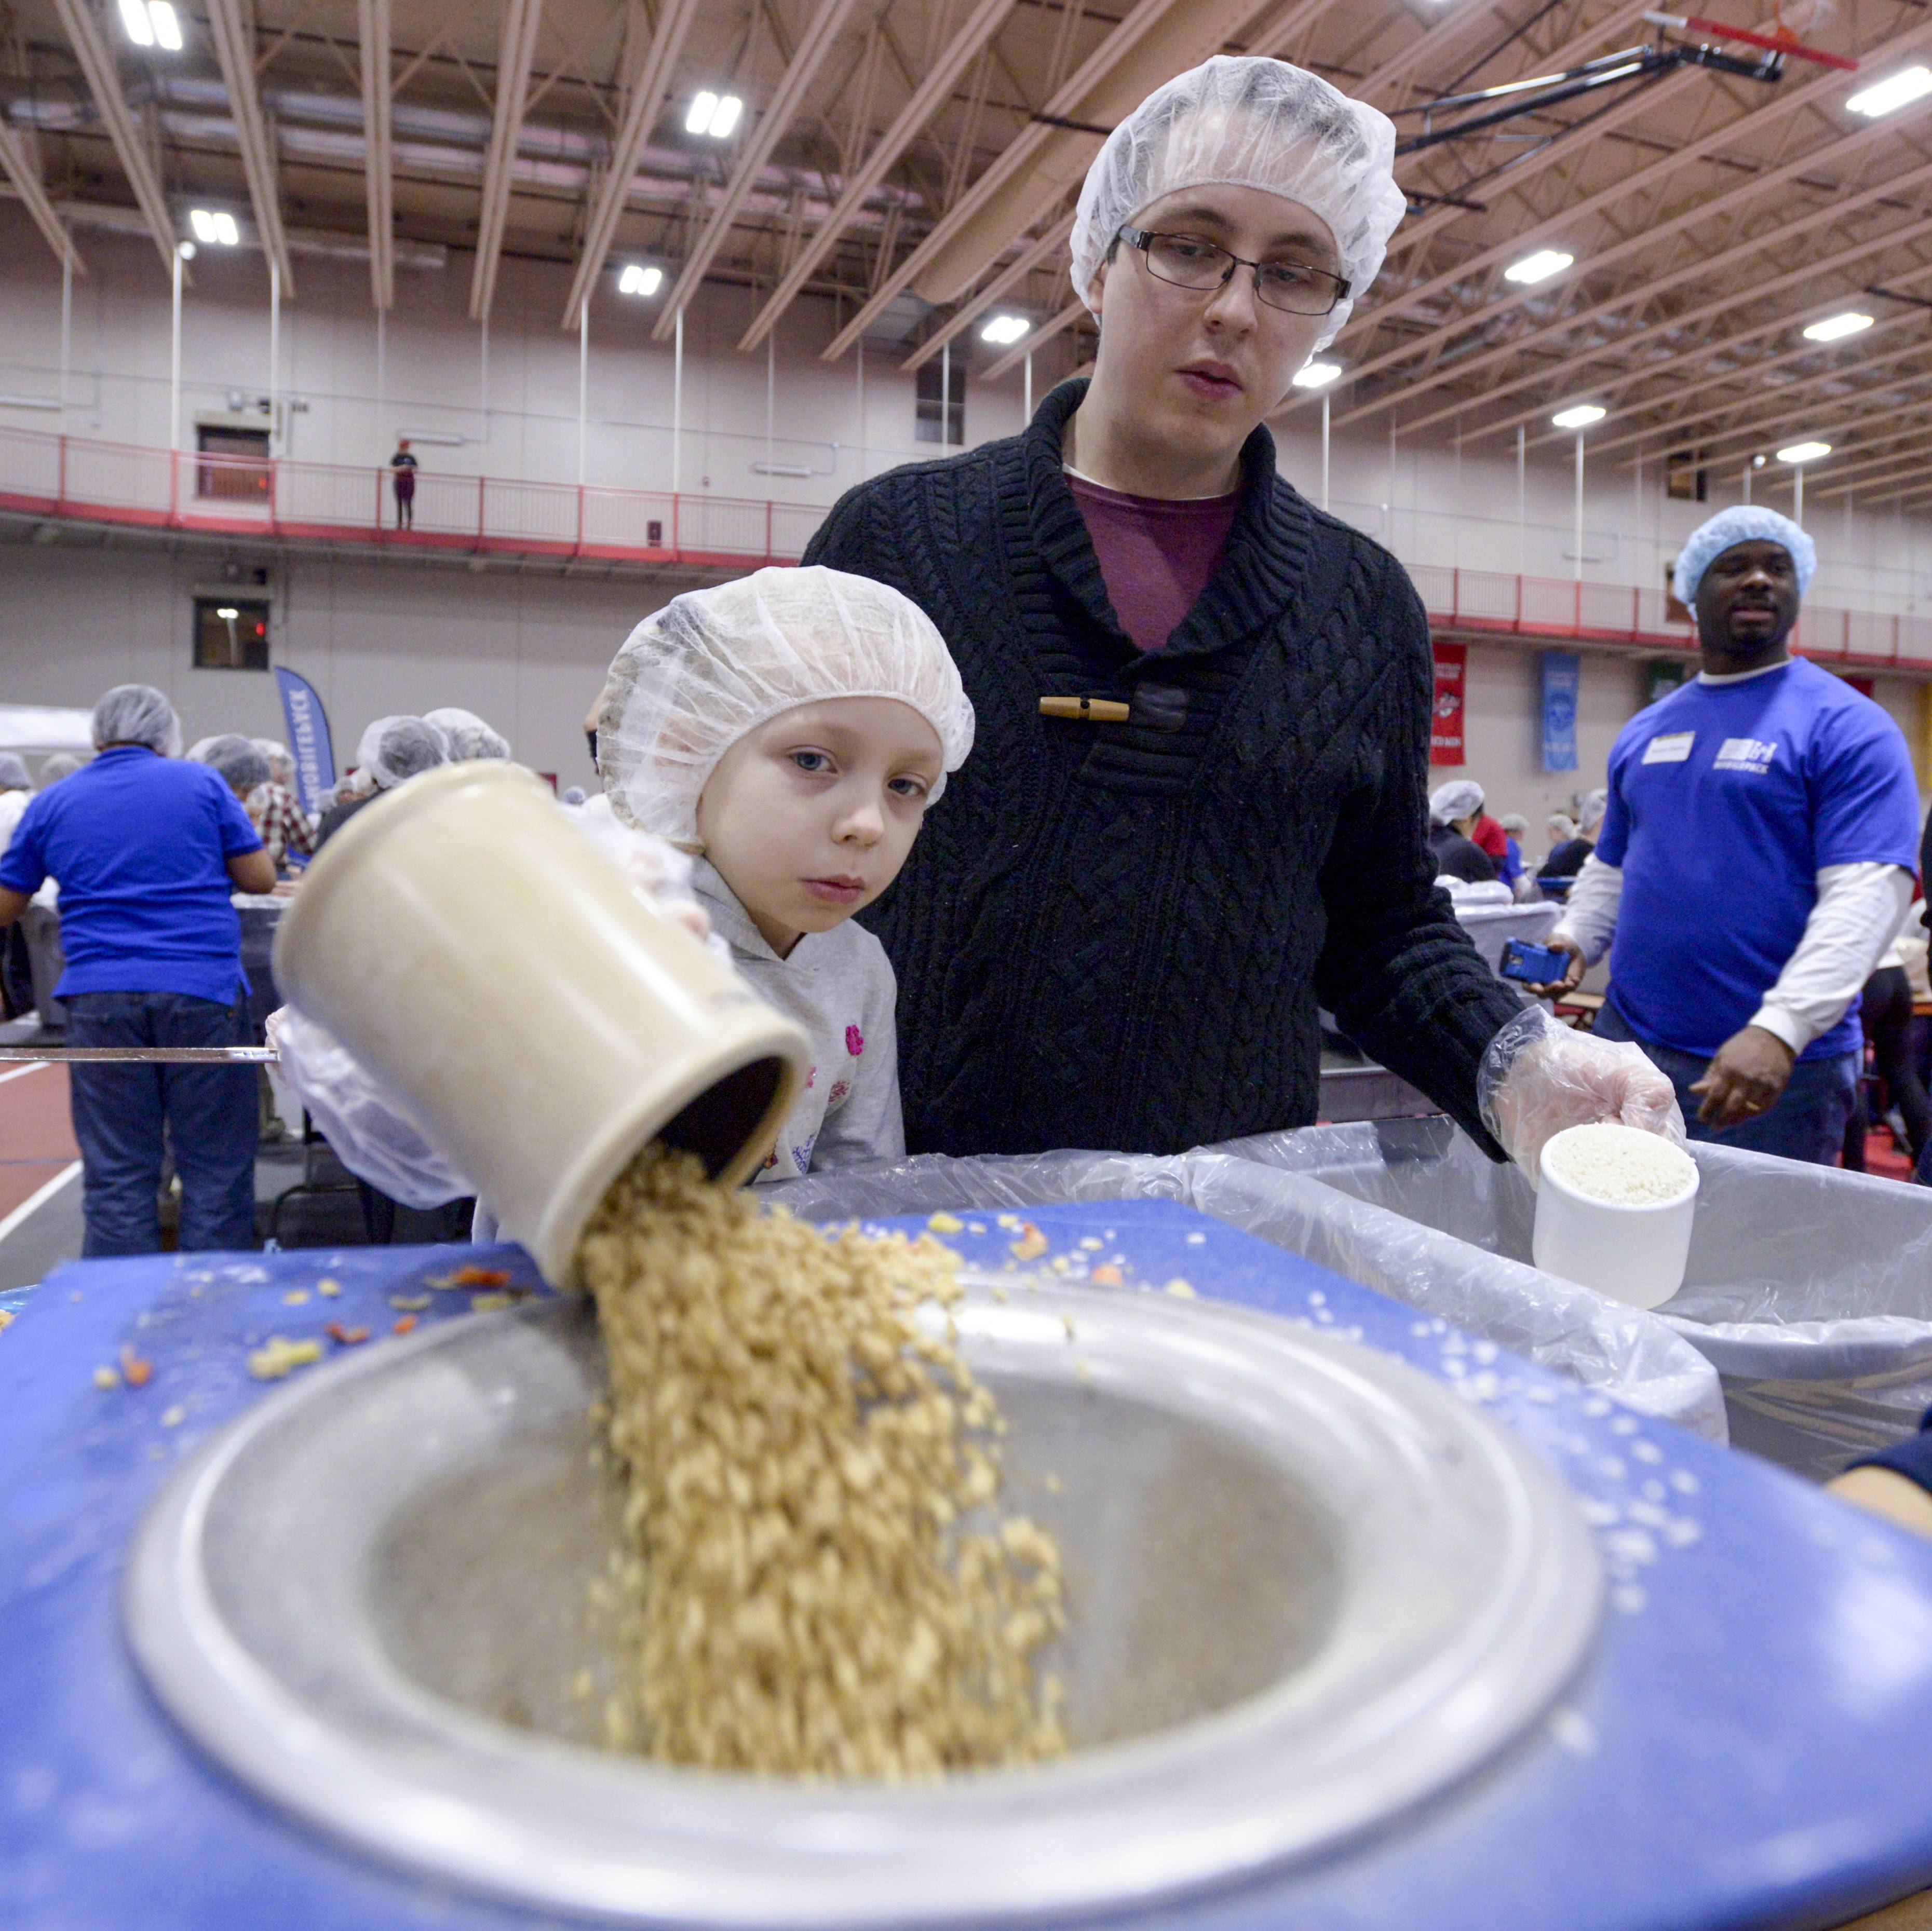 About 5,000 volunteers are expected to pack 1.2 million Manna Pack meals of nutrient powder, rice and dehydrated vegetables for Feed My Starving Children to distribute in poor countries during the eighth annual Feed the Need! Illinois event Feb. 18 and 19 in Naperville.